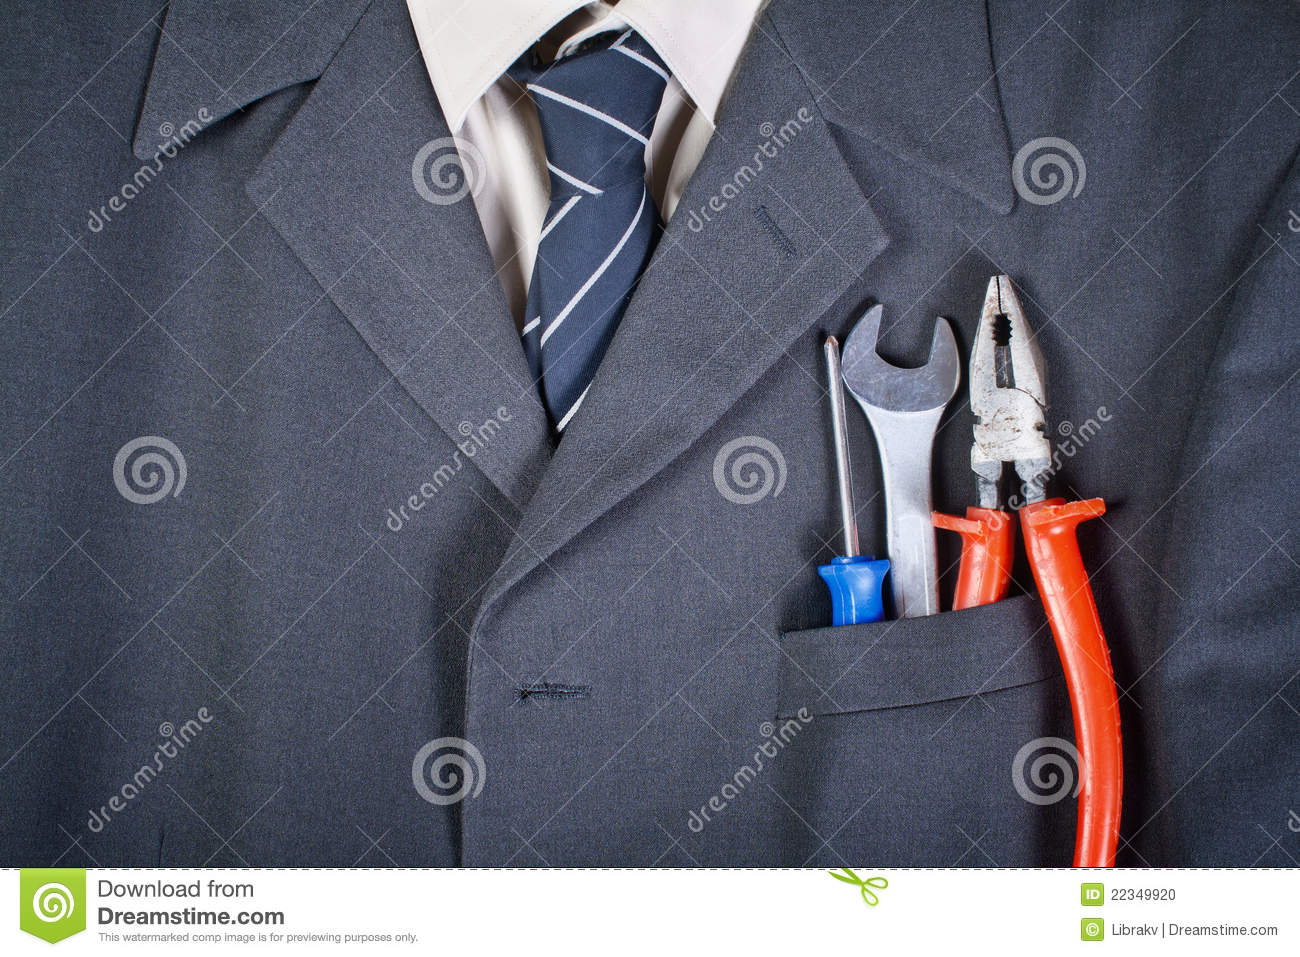 Tools in the businessman pocket